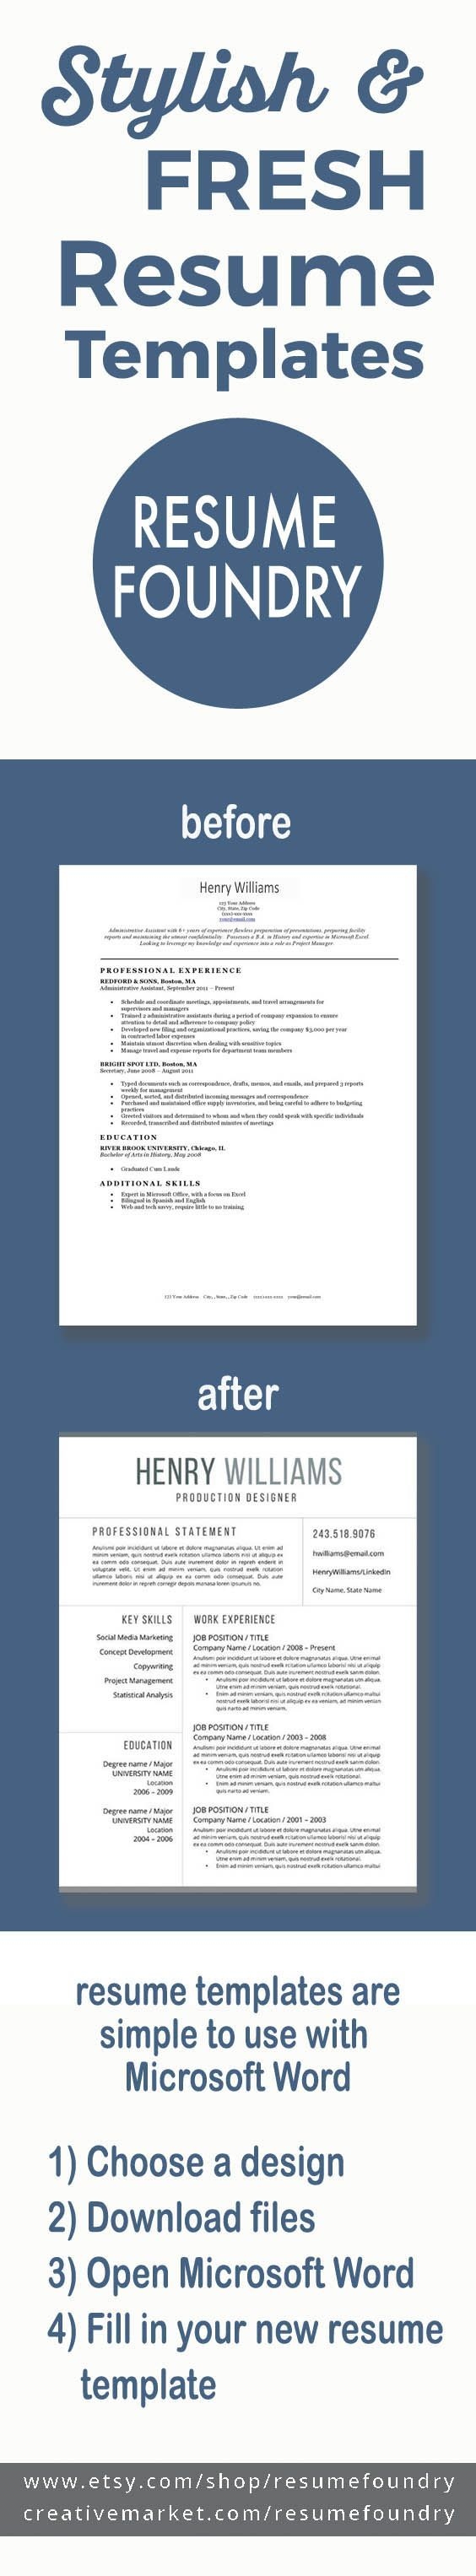 It has never been easier to update your resume in just a